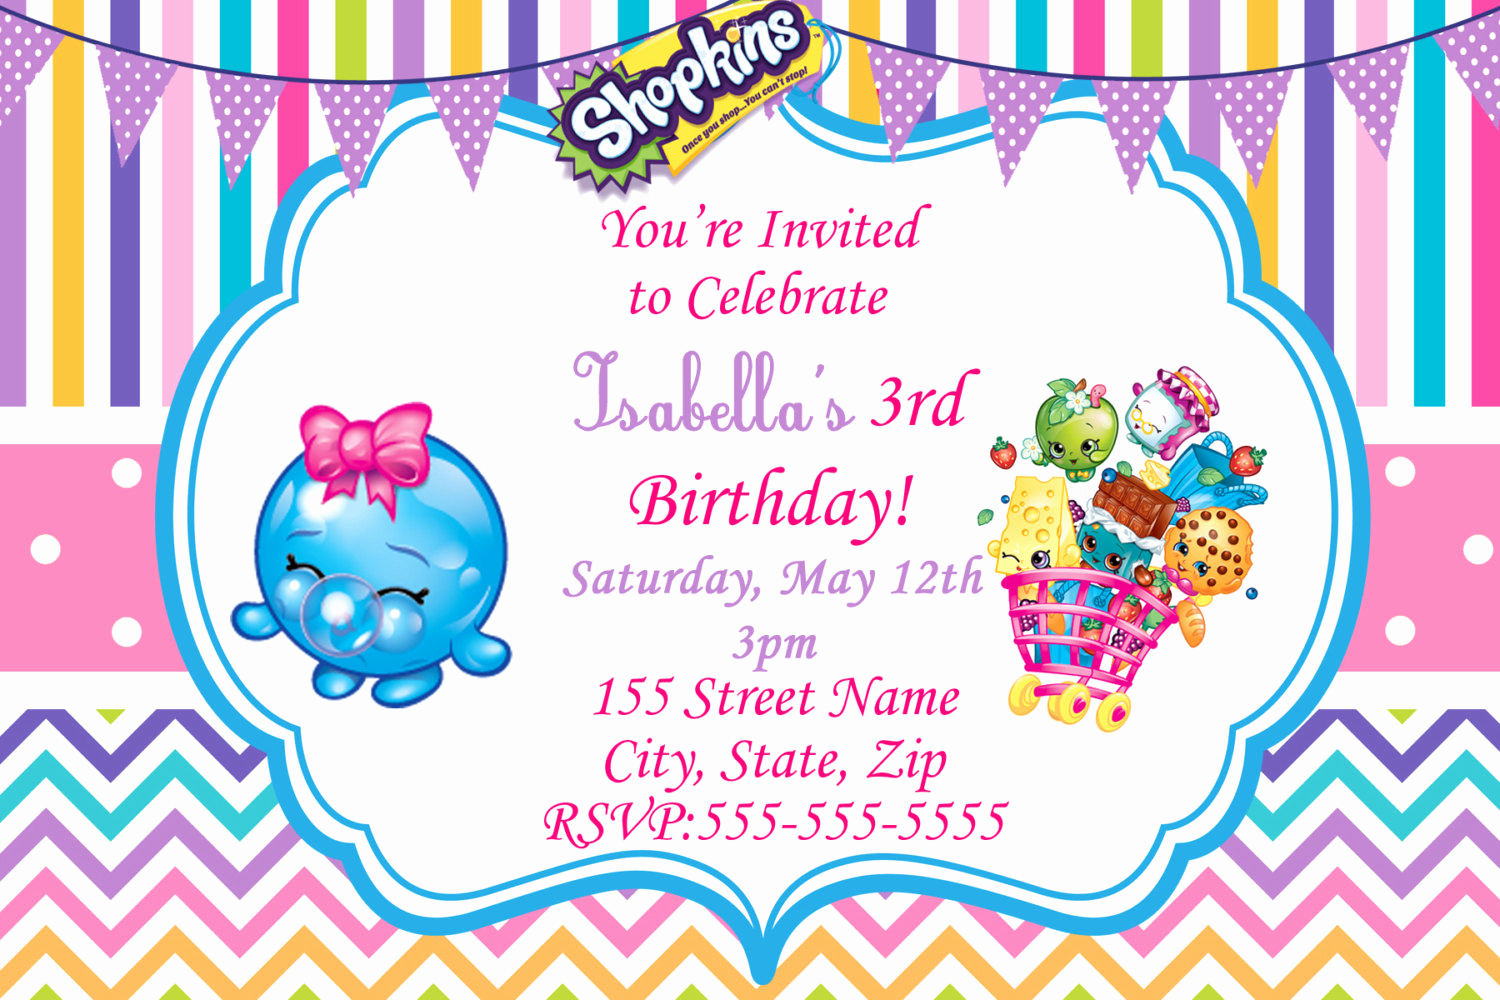 Free Shopkins Invitation Template Inspirational Shopkins Invitations Shopkins Birthday Party Invitation